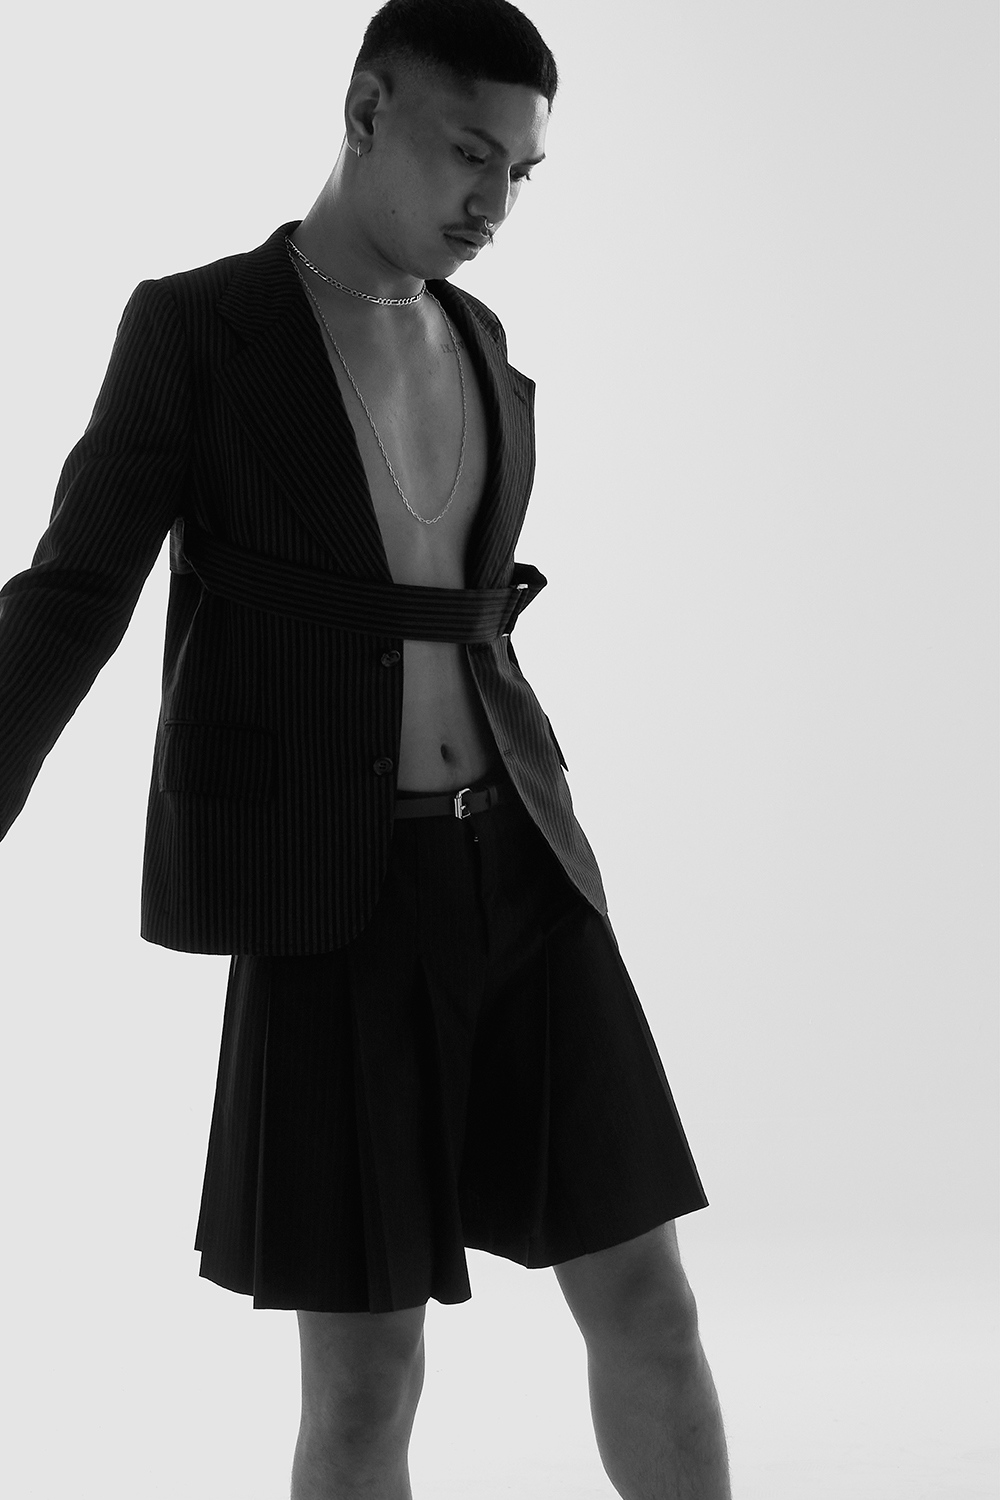 Sione Tuitavake wearing Comme Des Garcons for Astrophe HoSione Tuitavake wearing Comme Des Garcons for Astrophe Homme fashion editorial by Aaron VIIImme fashion editorial by Aaron VIII